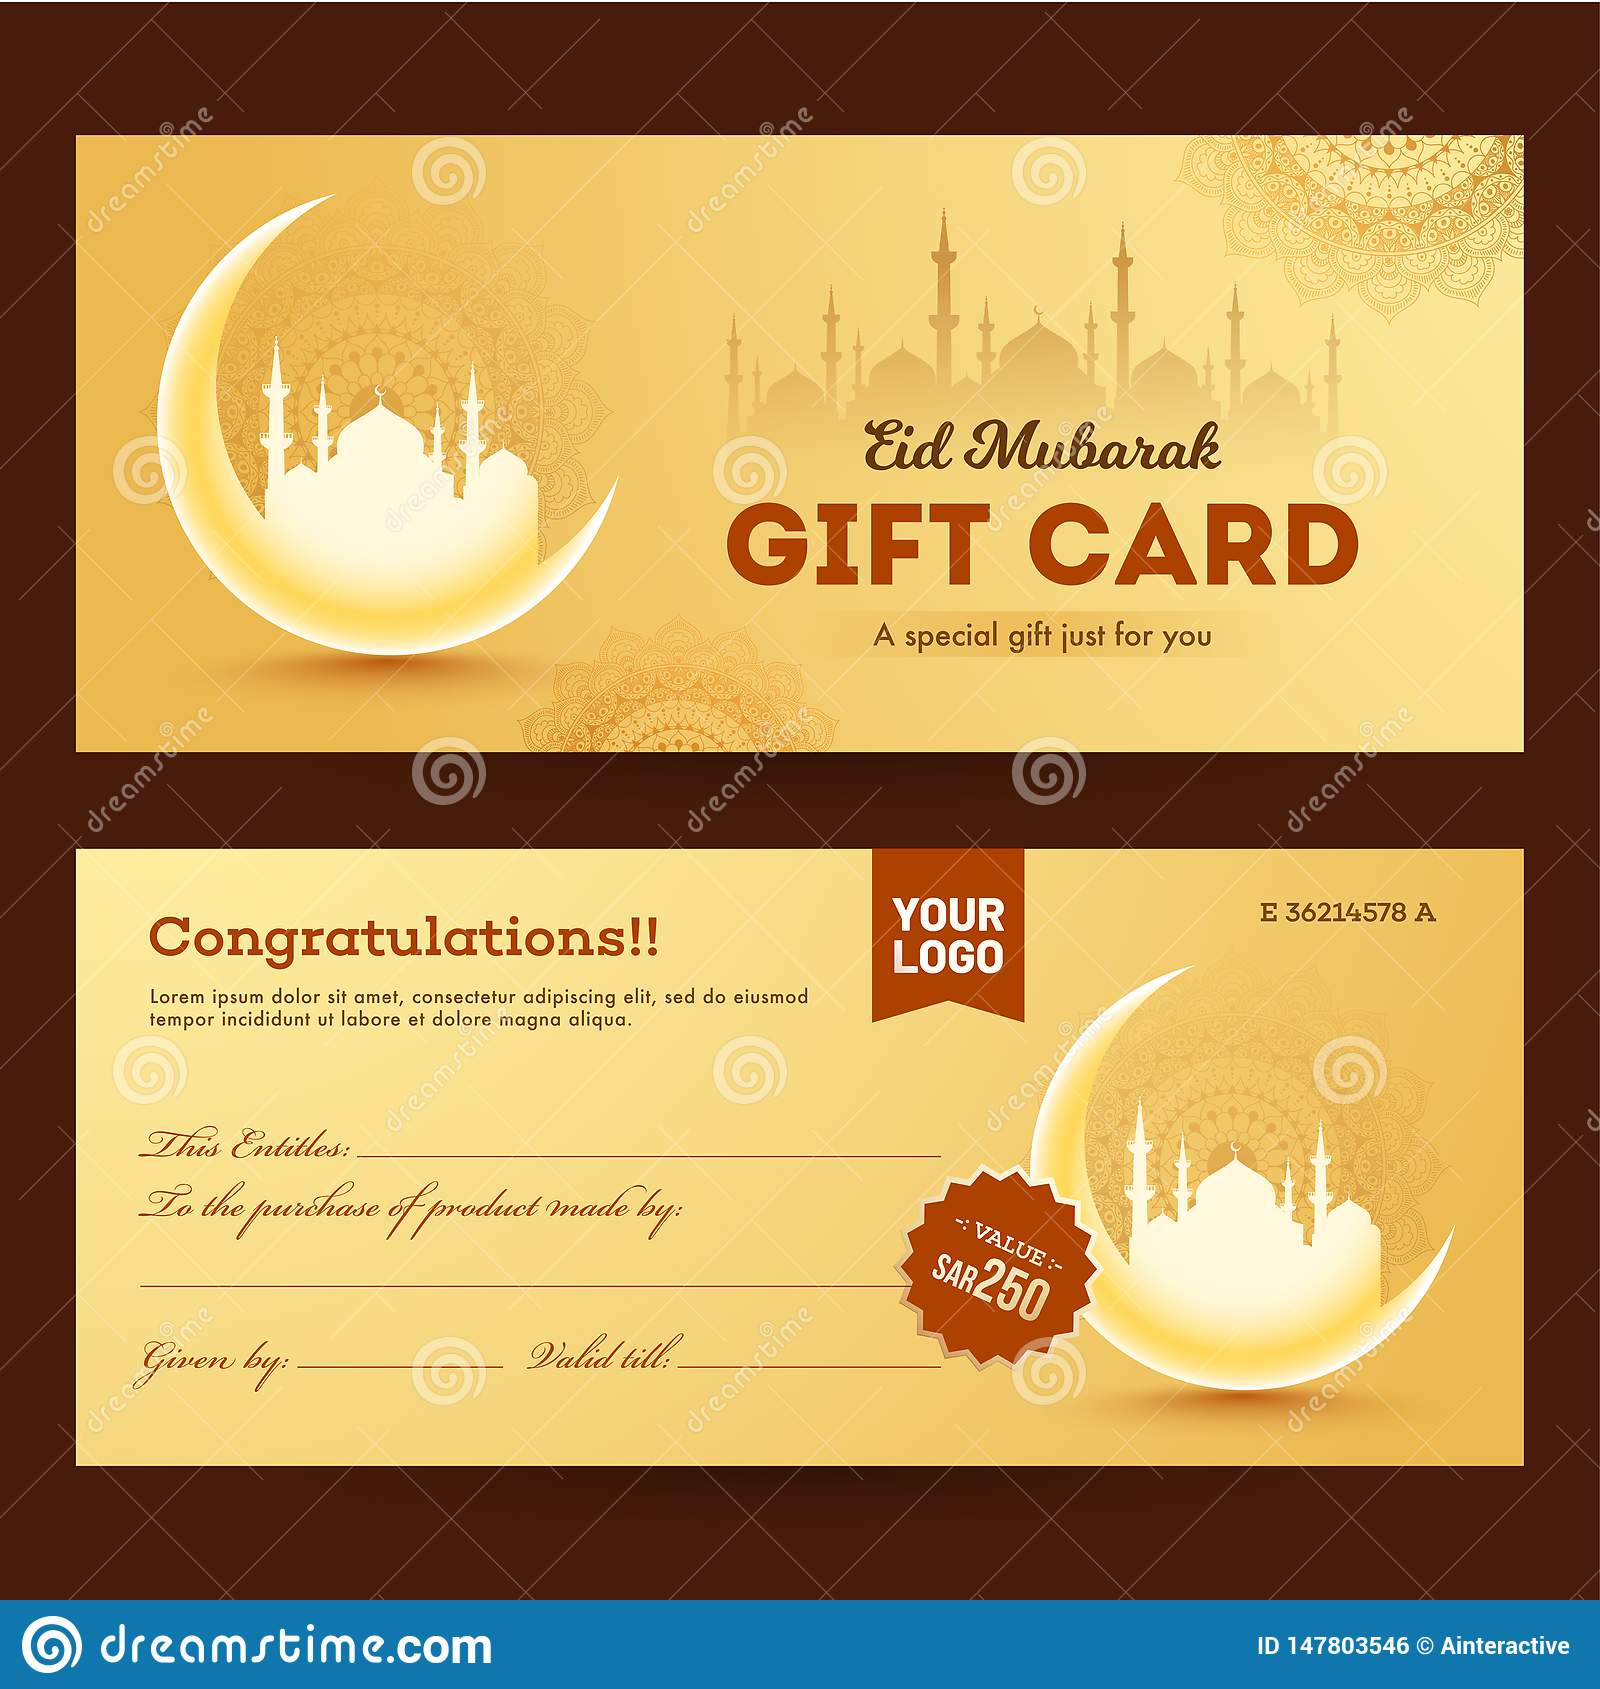 front and back view of gift card for eid mubarak stock